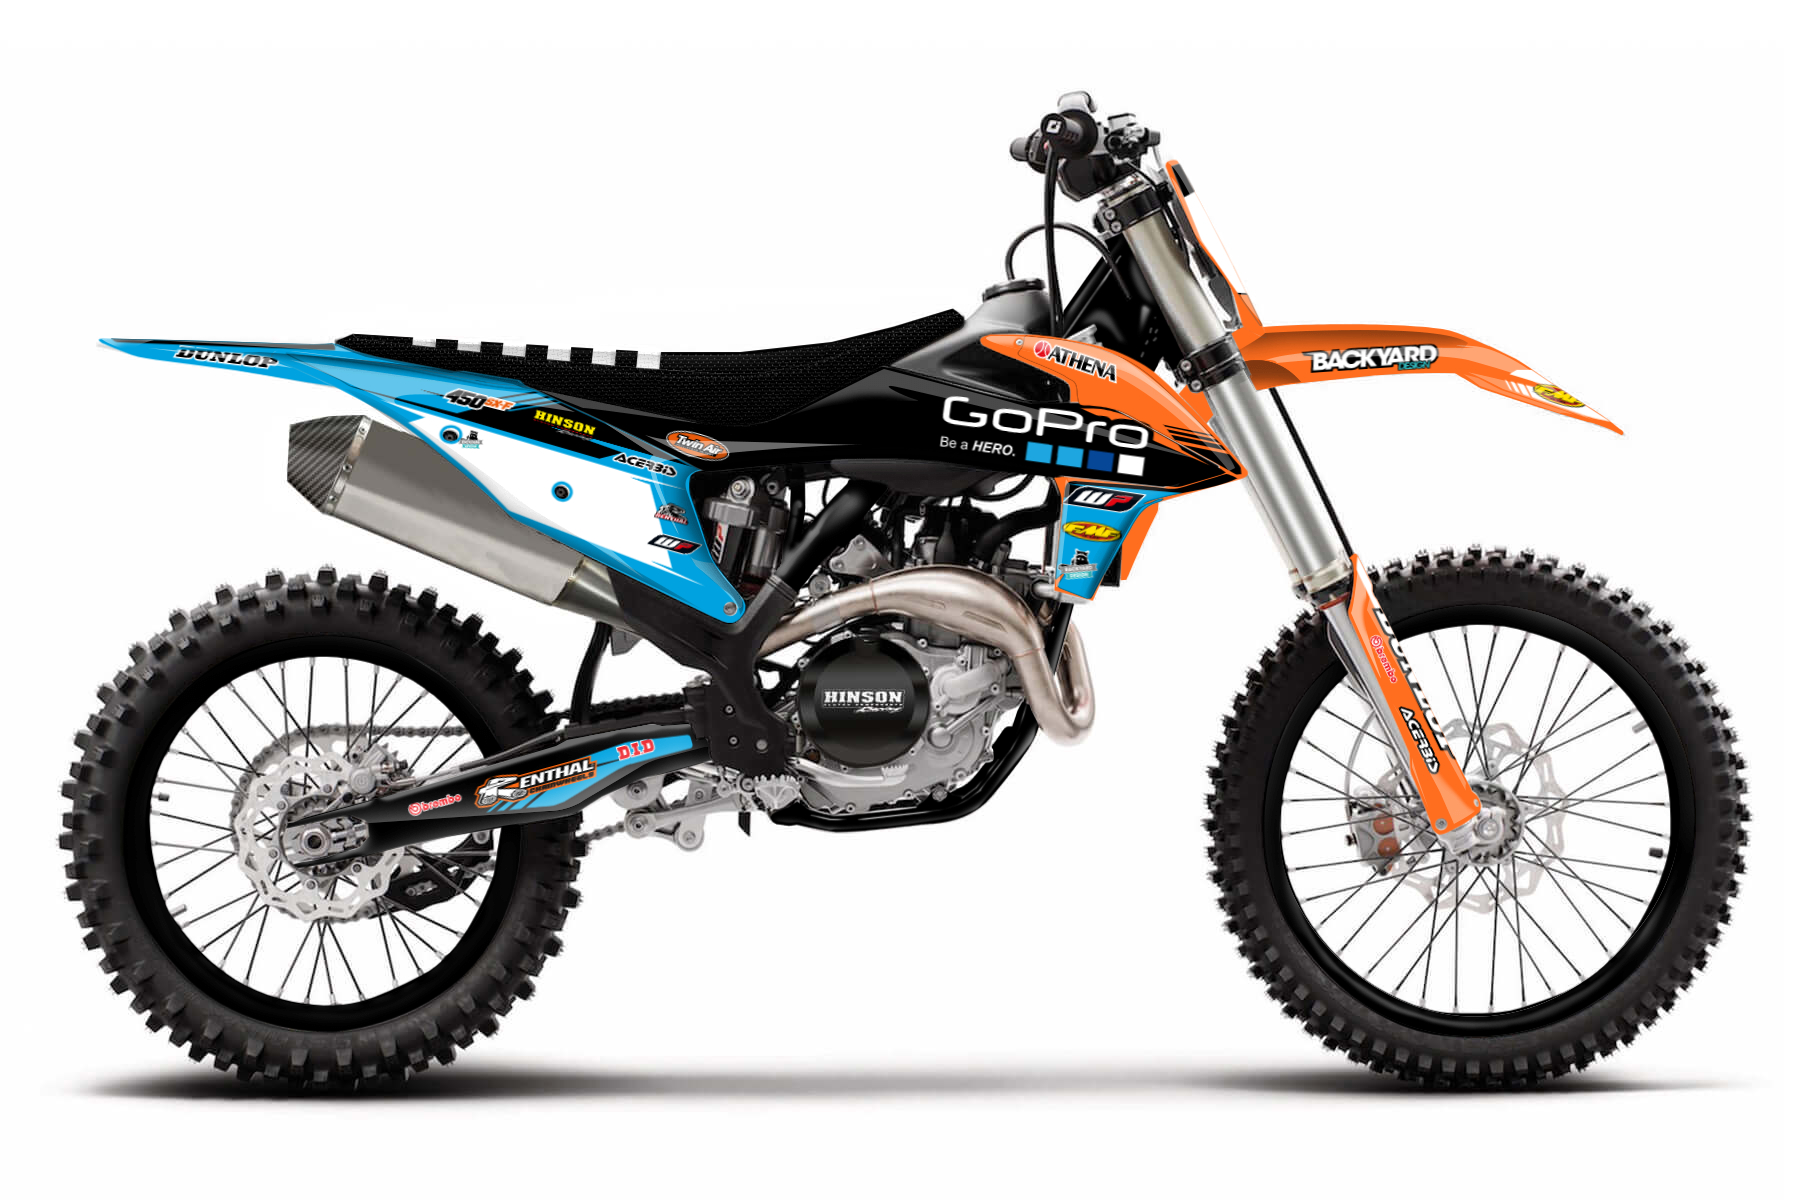 KTM SX-F 450 MX Graphic Kits  43 hp of raw power will make you look good on the track. This bike has already won numerous championships and will win many to come. If you seek for a factory bike – this is the closest you can get.